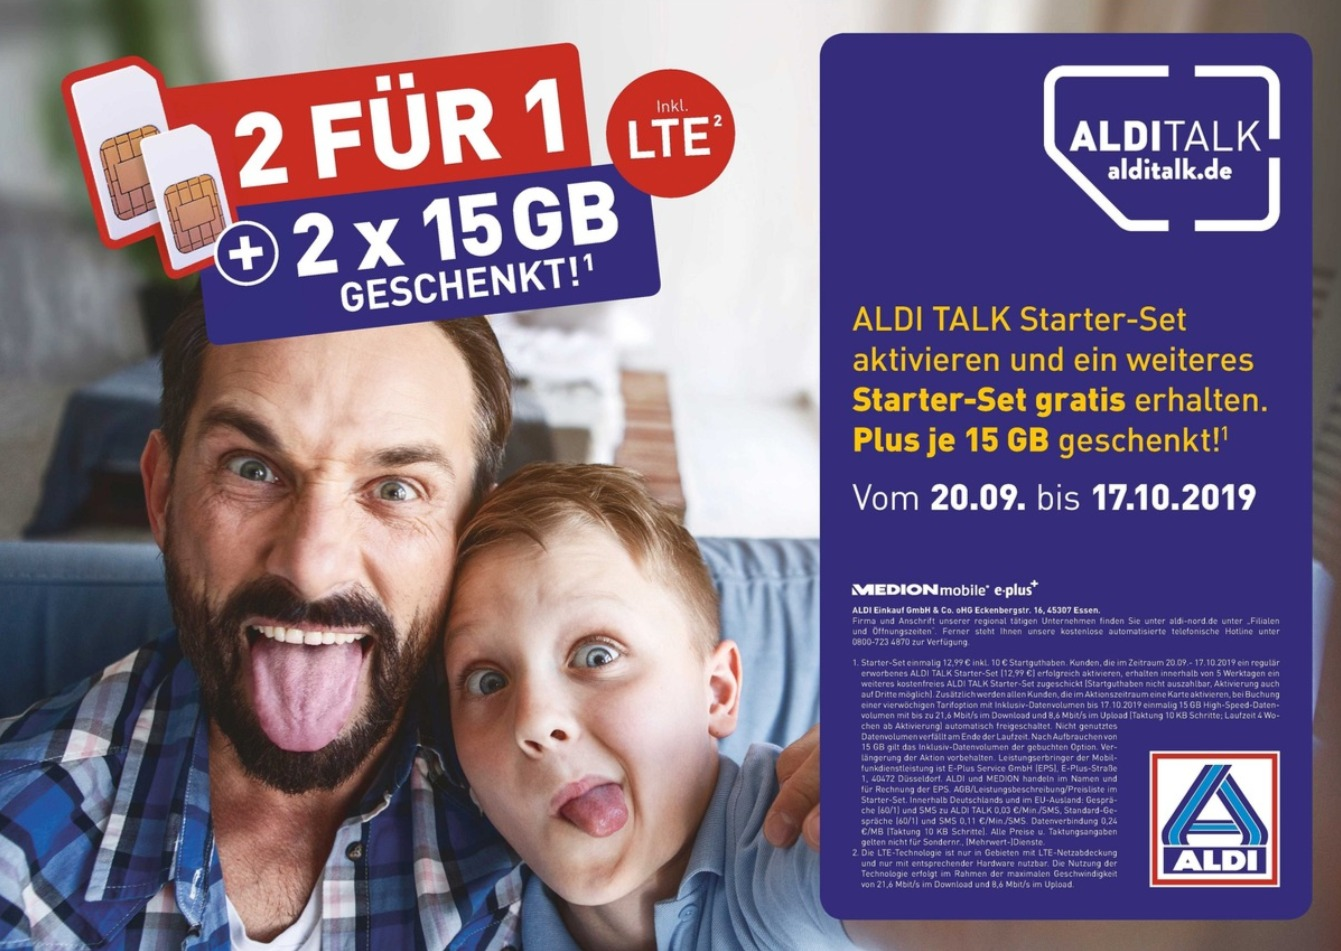 Aldi Talk 2 für 1 Aktion September 2019